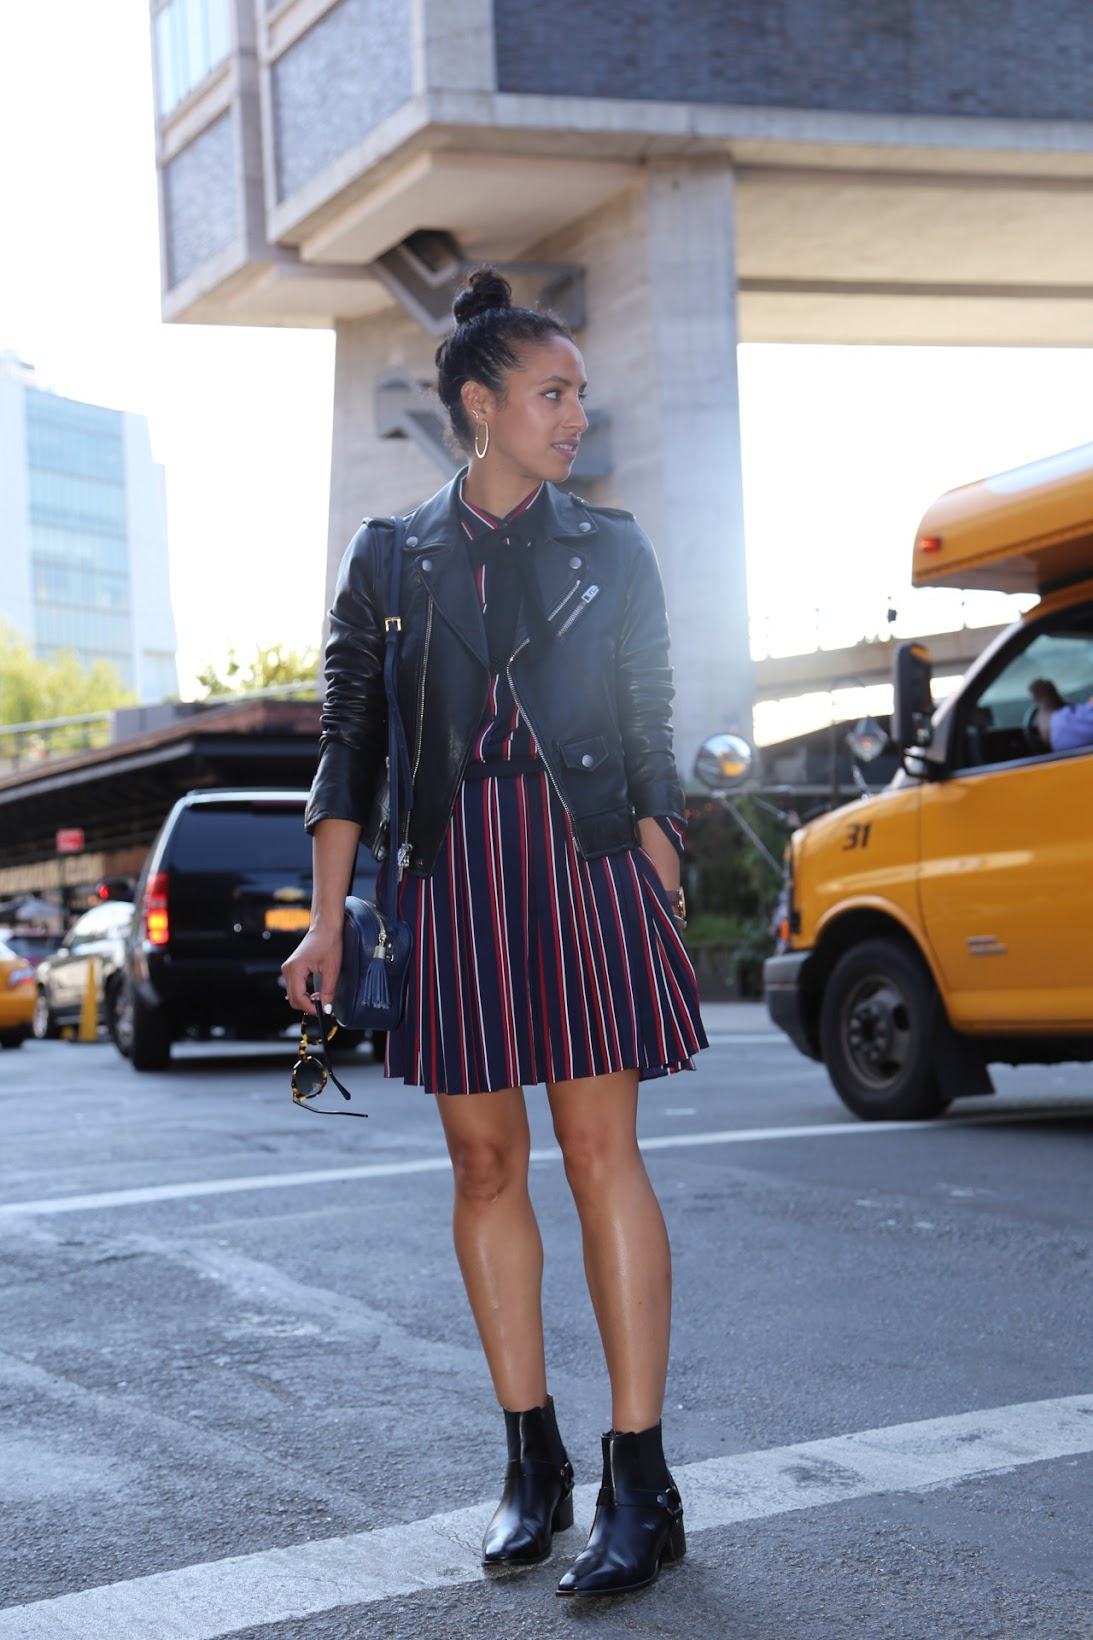 NYFW, NYC, all stripes, Banana Republic, It's Banana, stripes, Fall fashion, fall outfit, Gigi New york, hoop earrings, Frye harness boots, Frye Dara Harness Chelsea boot